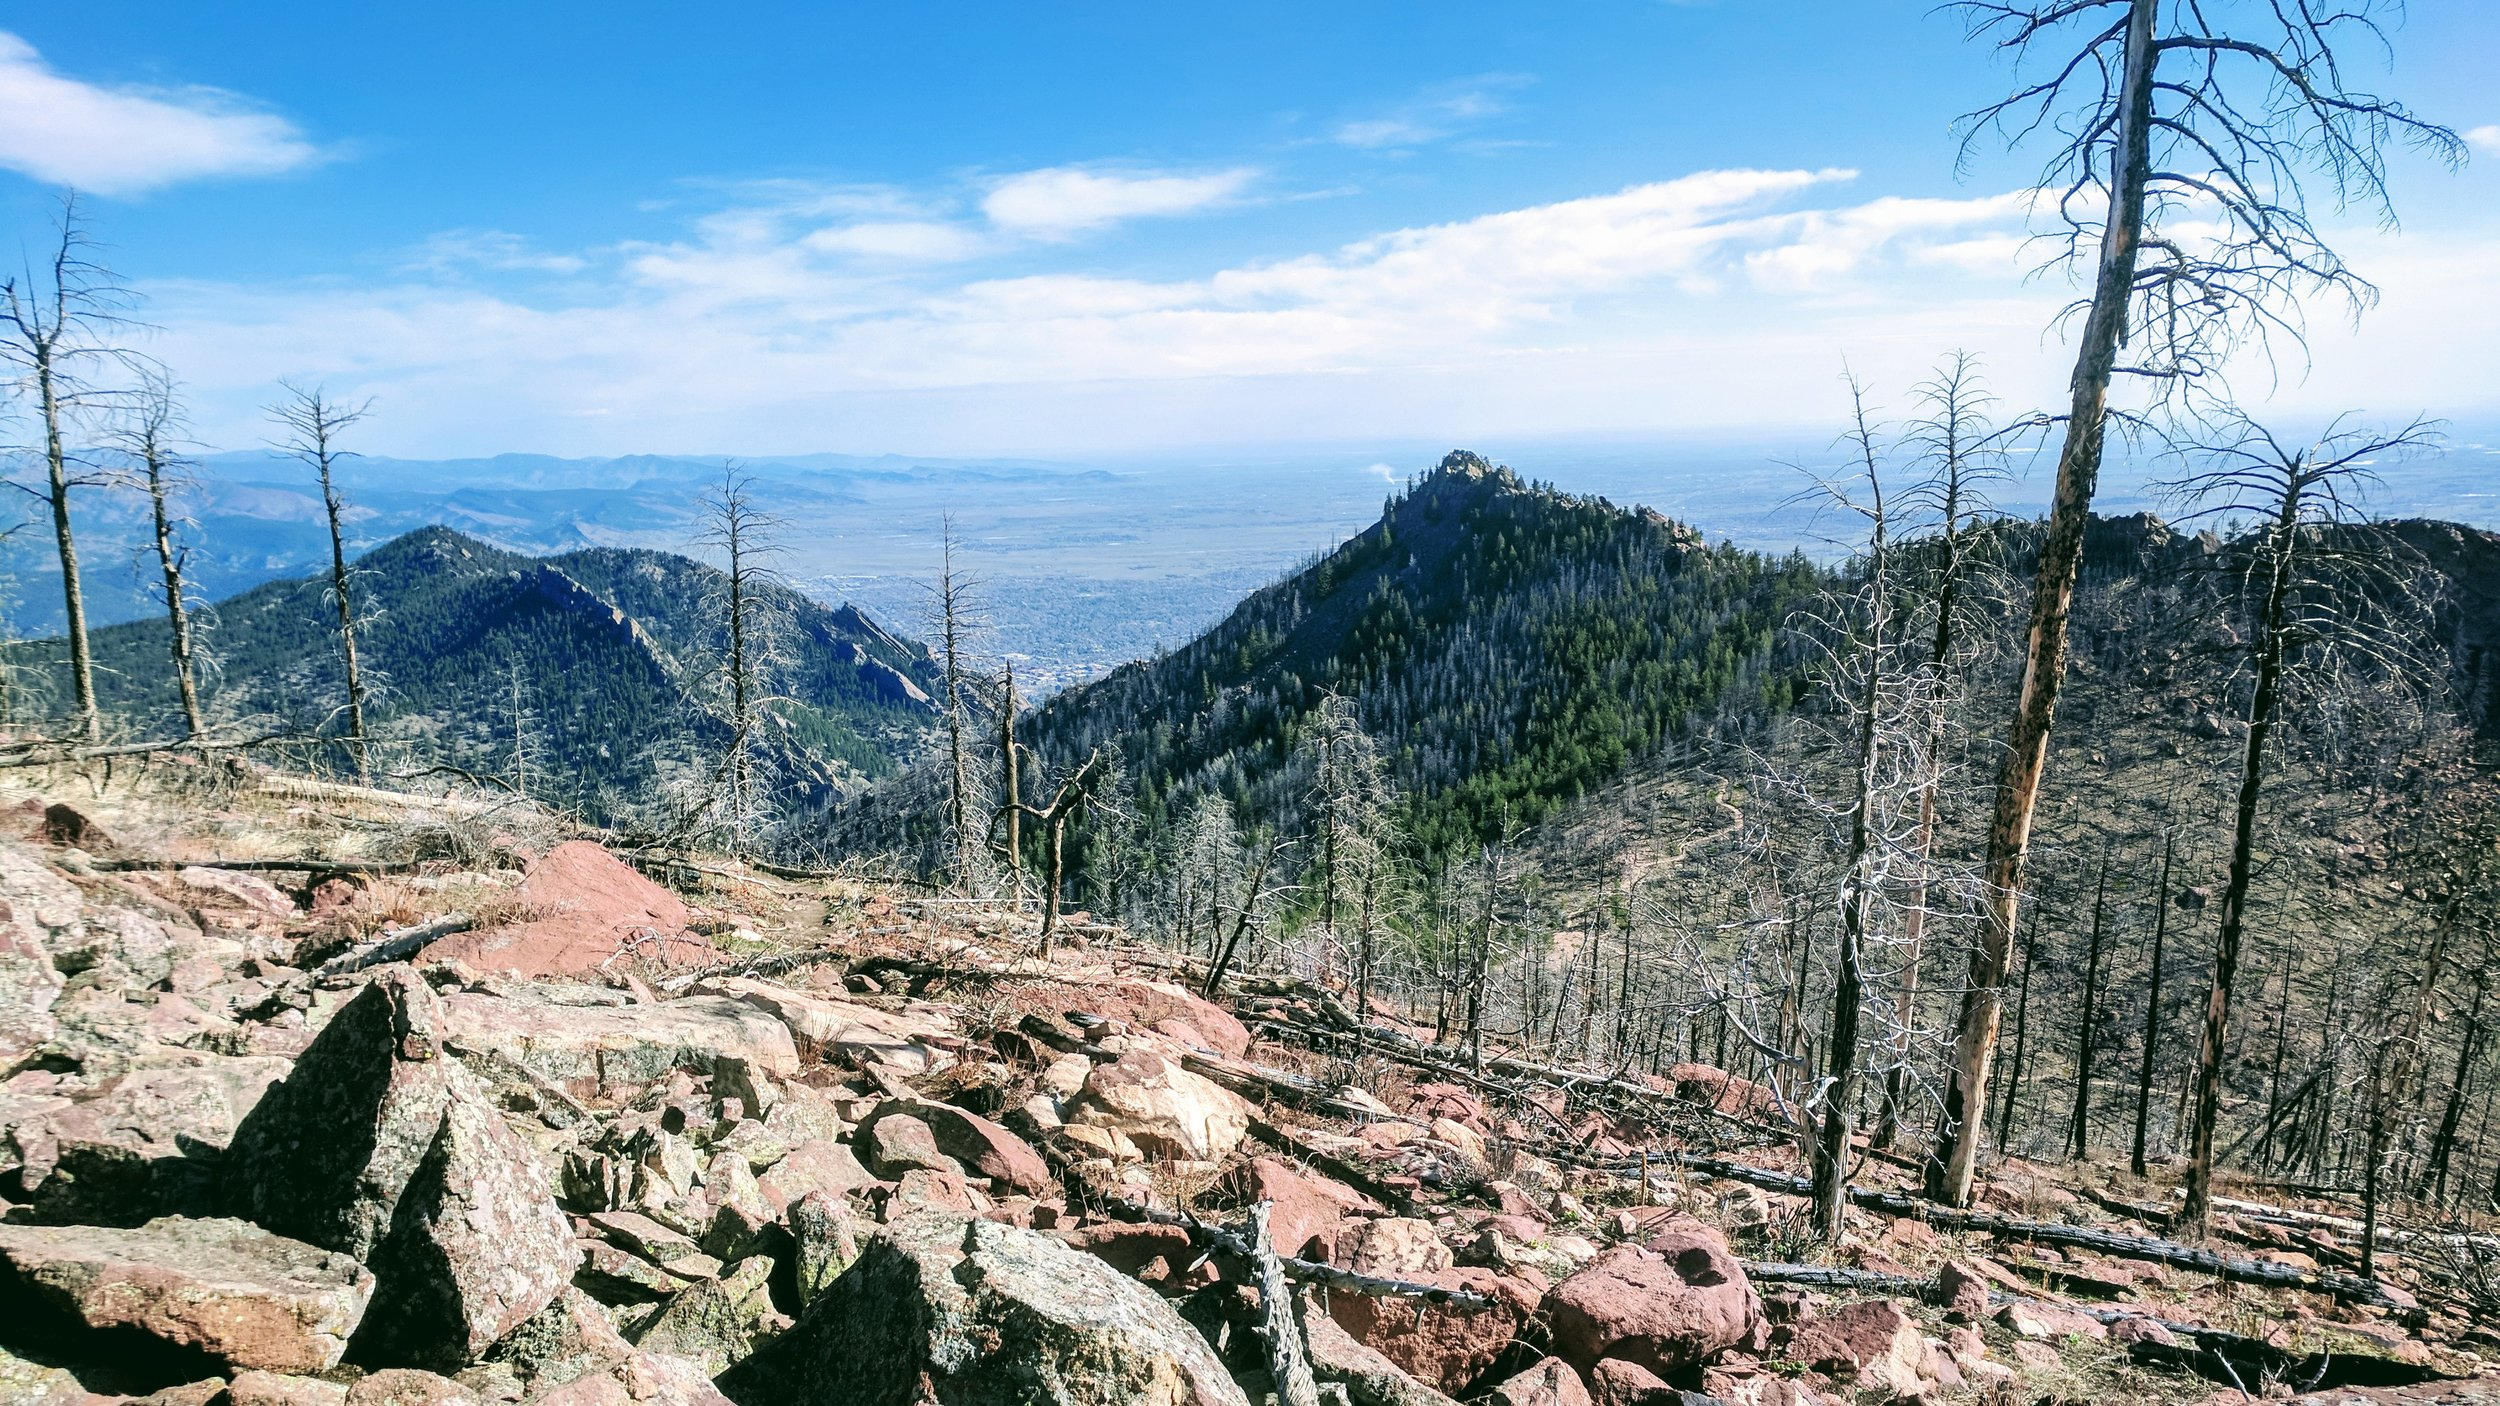 After tagging the summit, retrace your steps back down this rocky north flank of South Boulder Peak to the trail junction, and continue straight up a few rocky switchbacks toward Bear Peak.